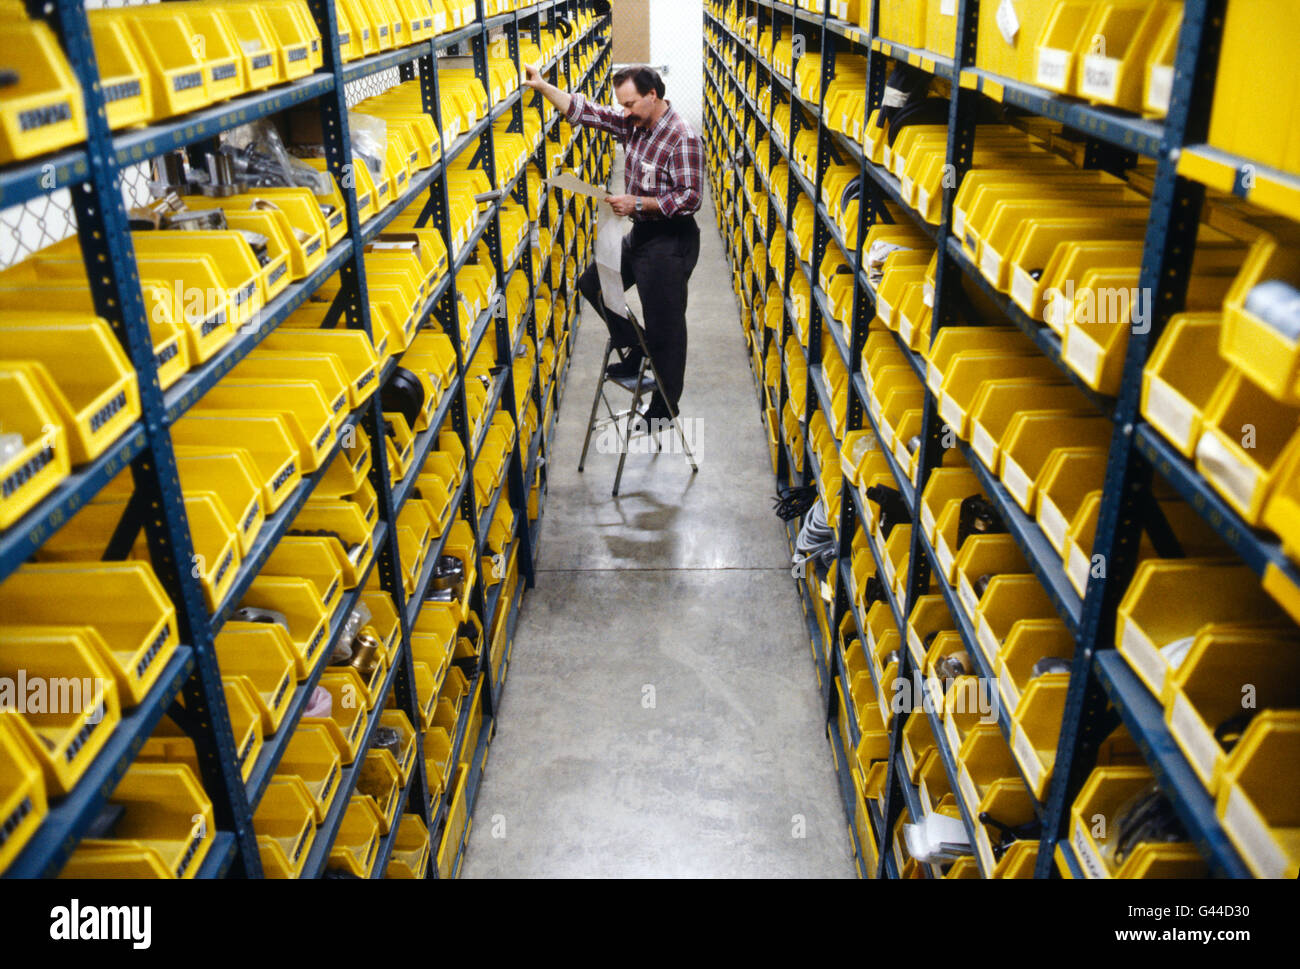 Male worker selecting parts from large distribution warehouse - Stock Image